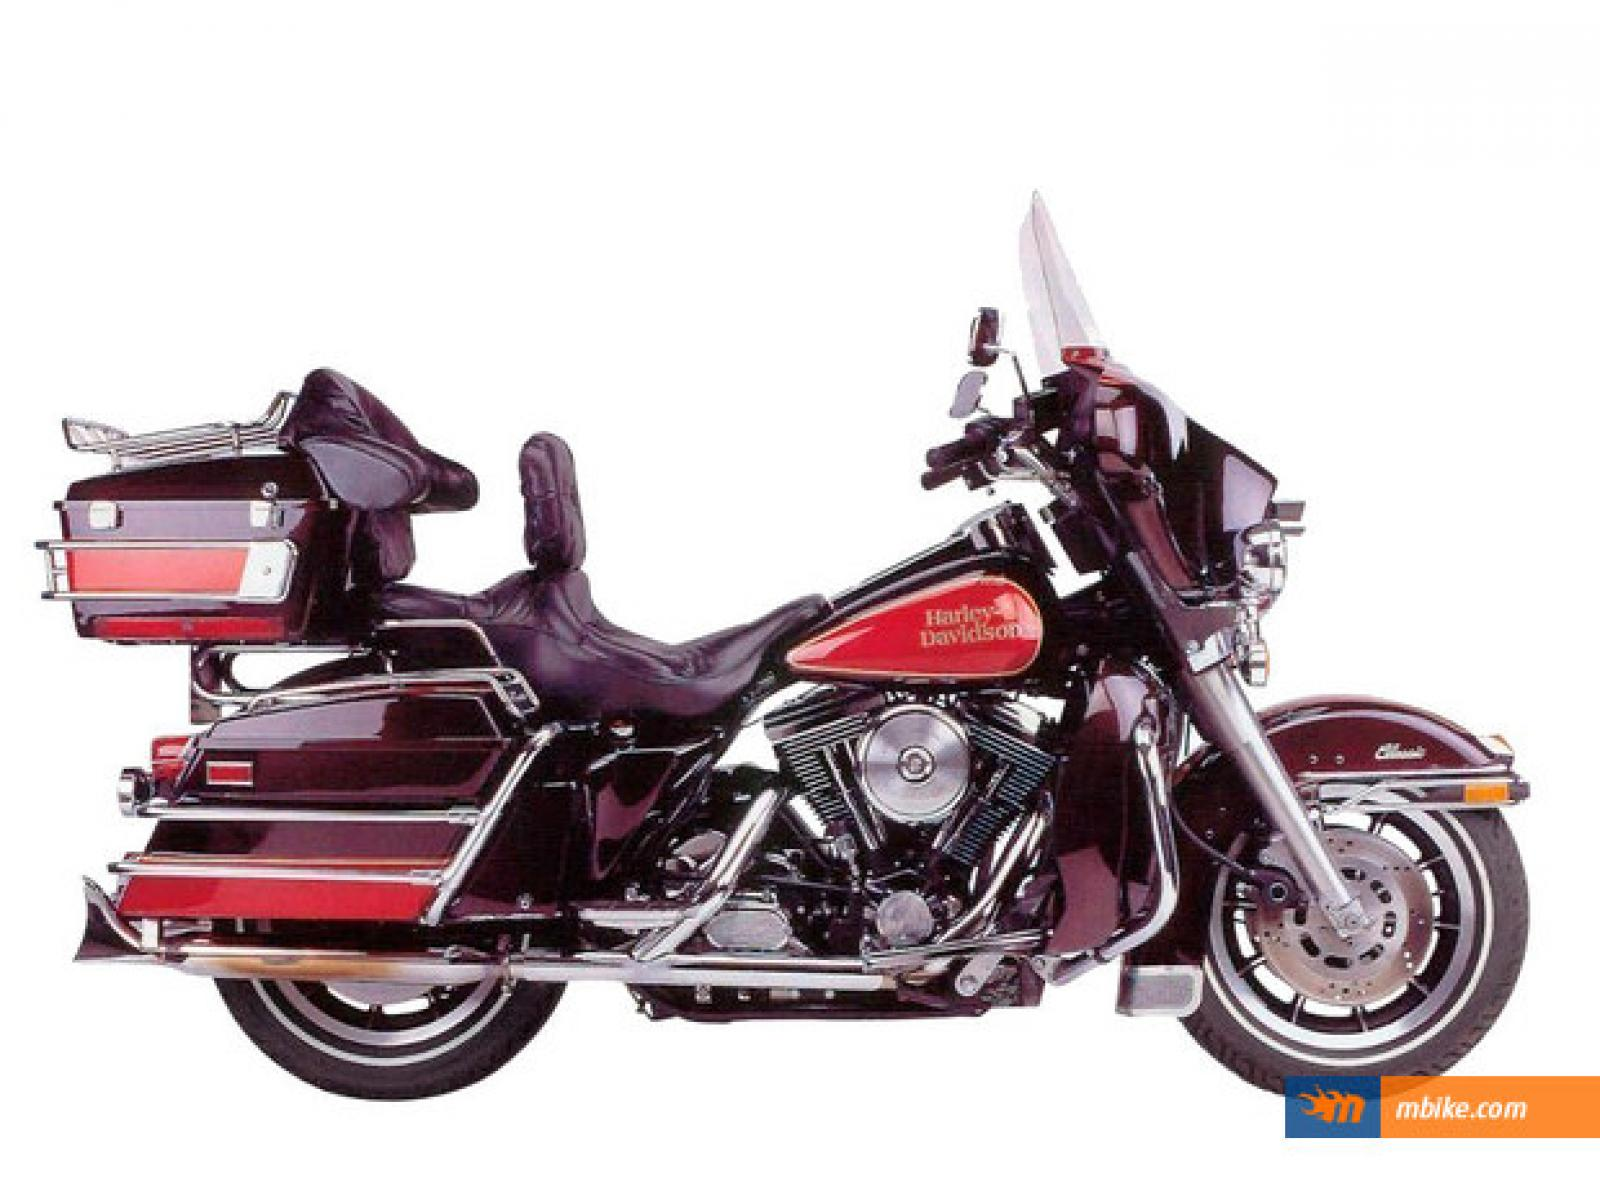 Harley-Davidson FLHTC 1340 Electra Glide Classic 1983 images #173495